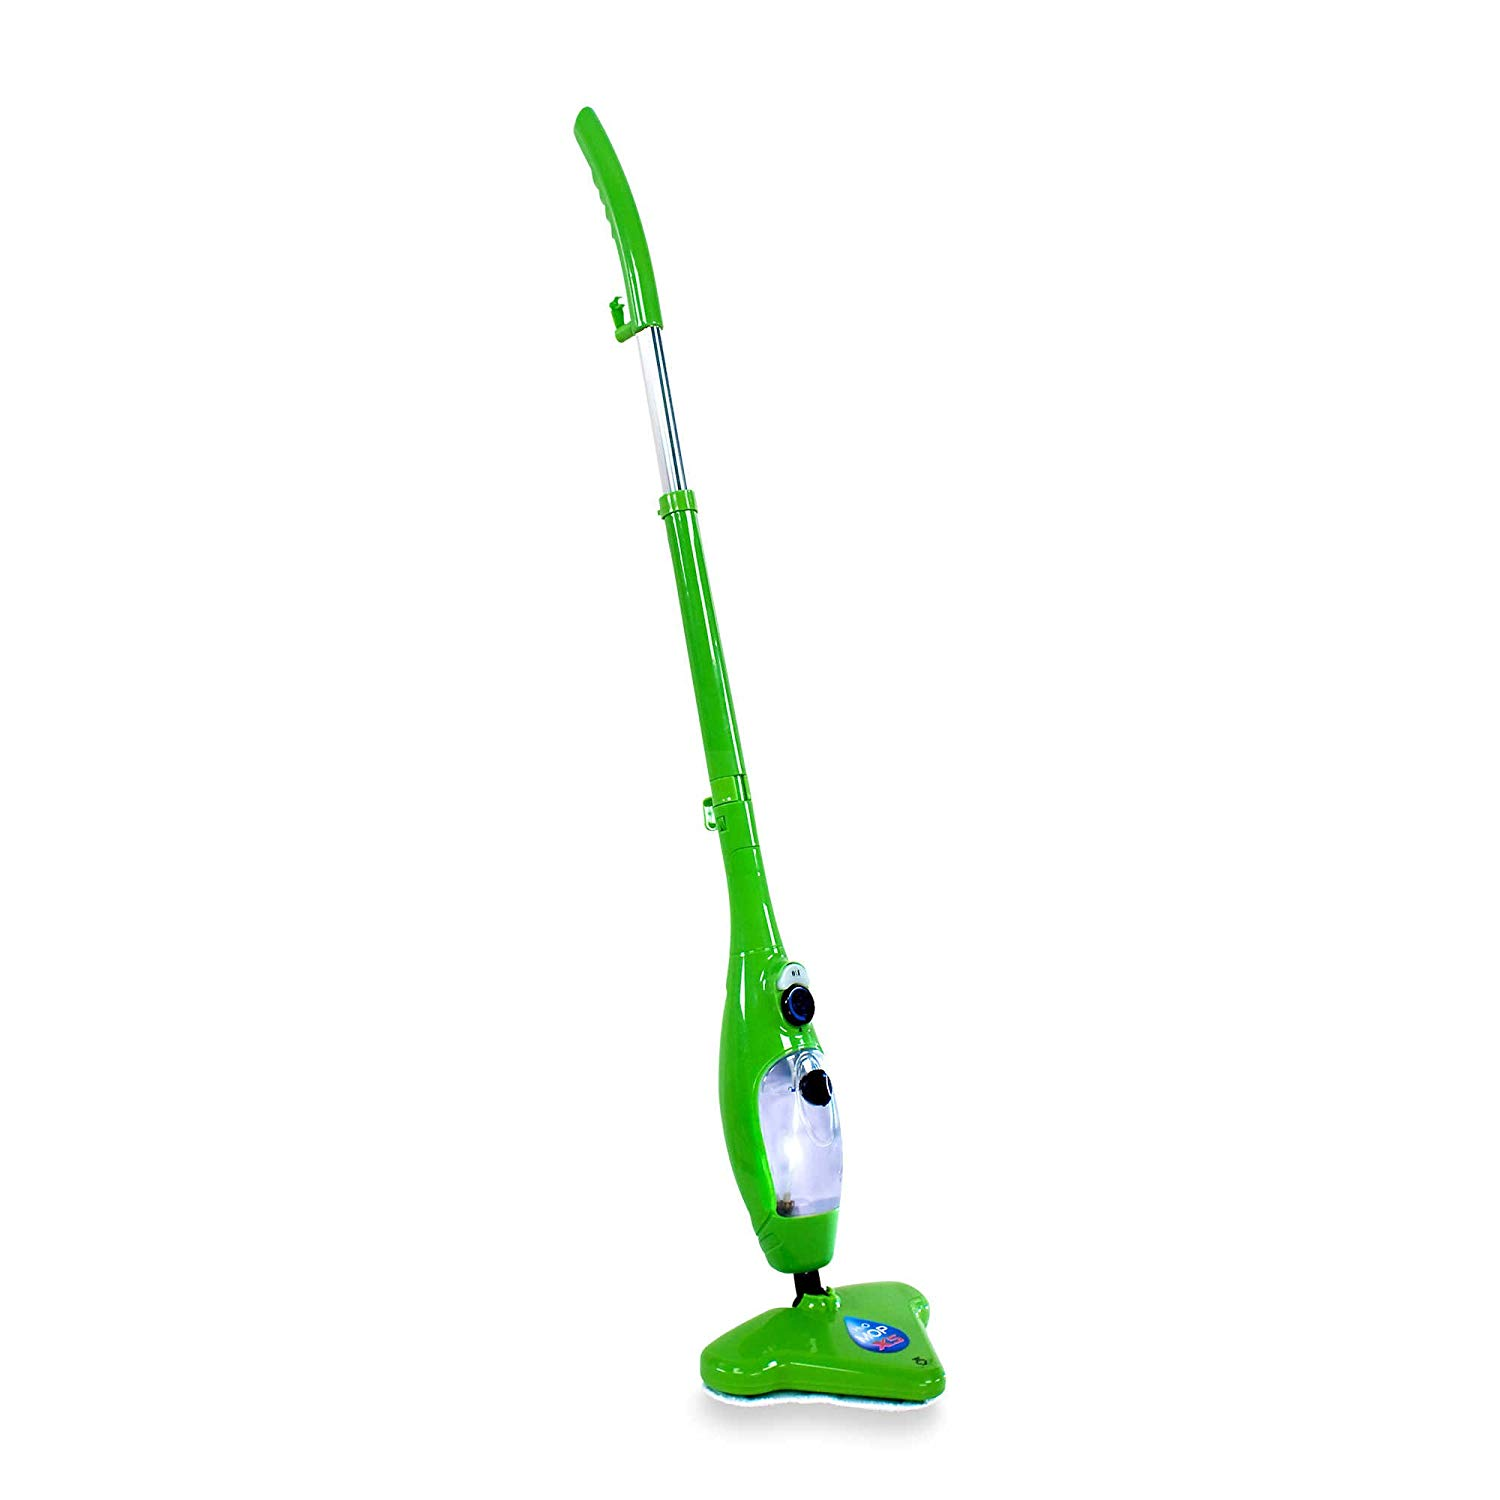 H2O X5 5- in-1 Cleaning Machine